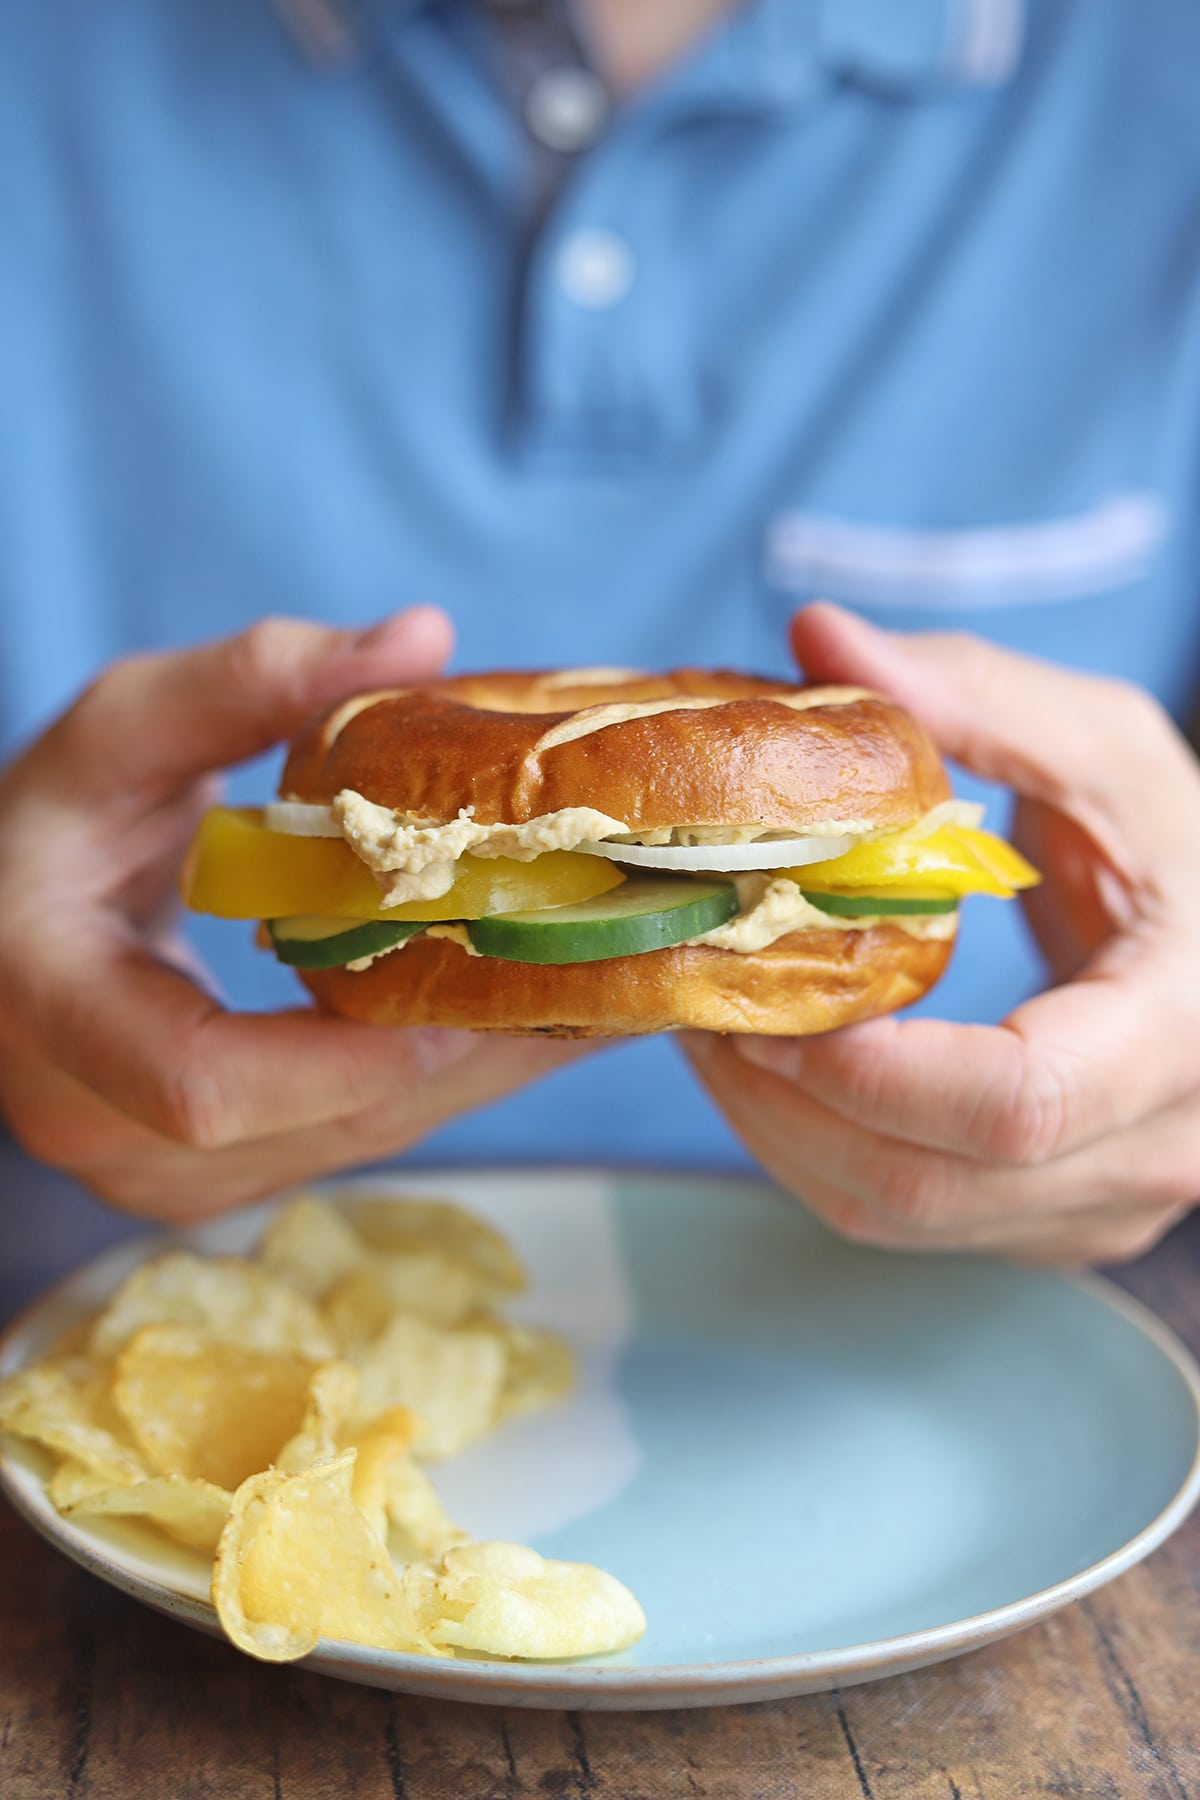 Hands holding bagel sandwich over plate.